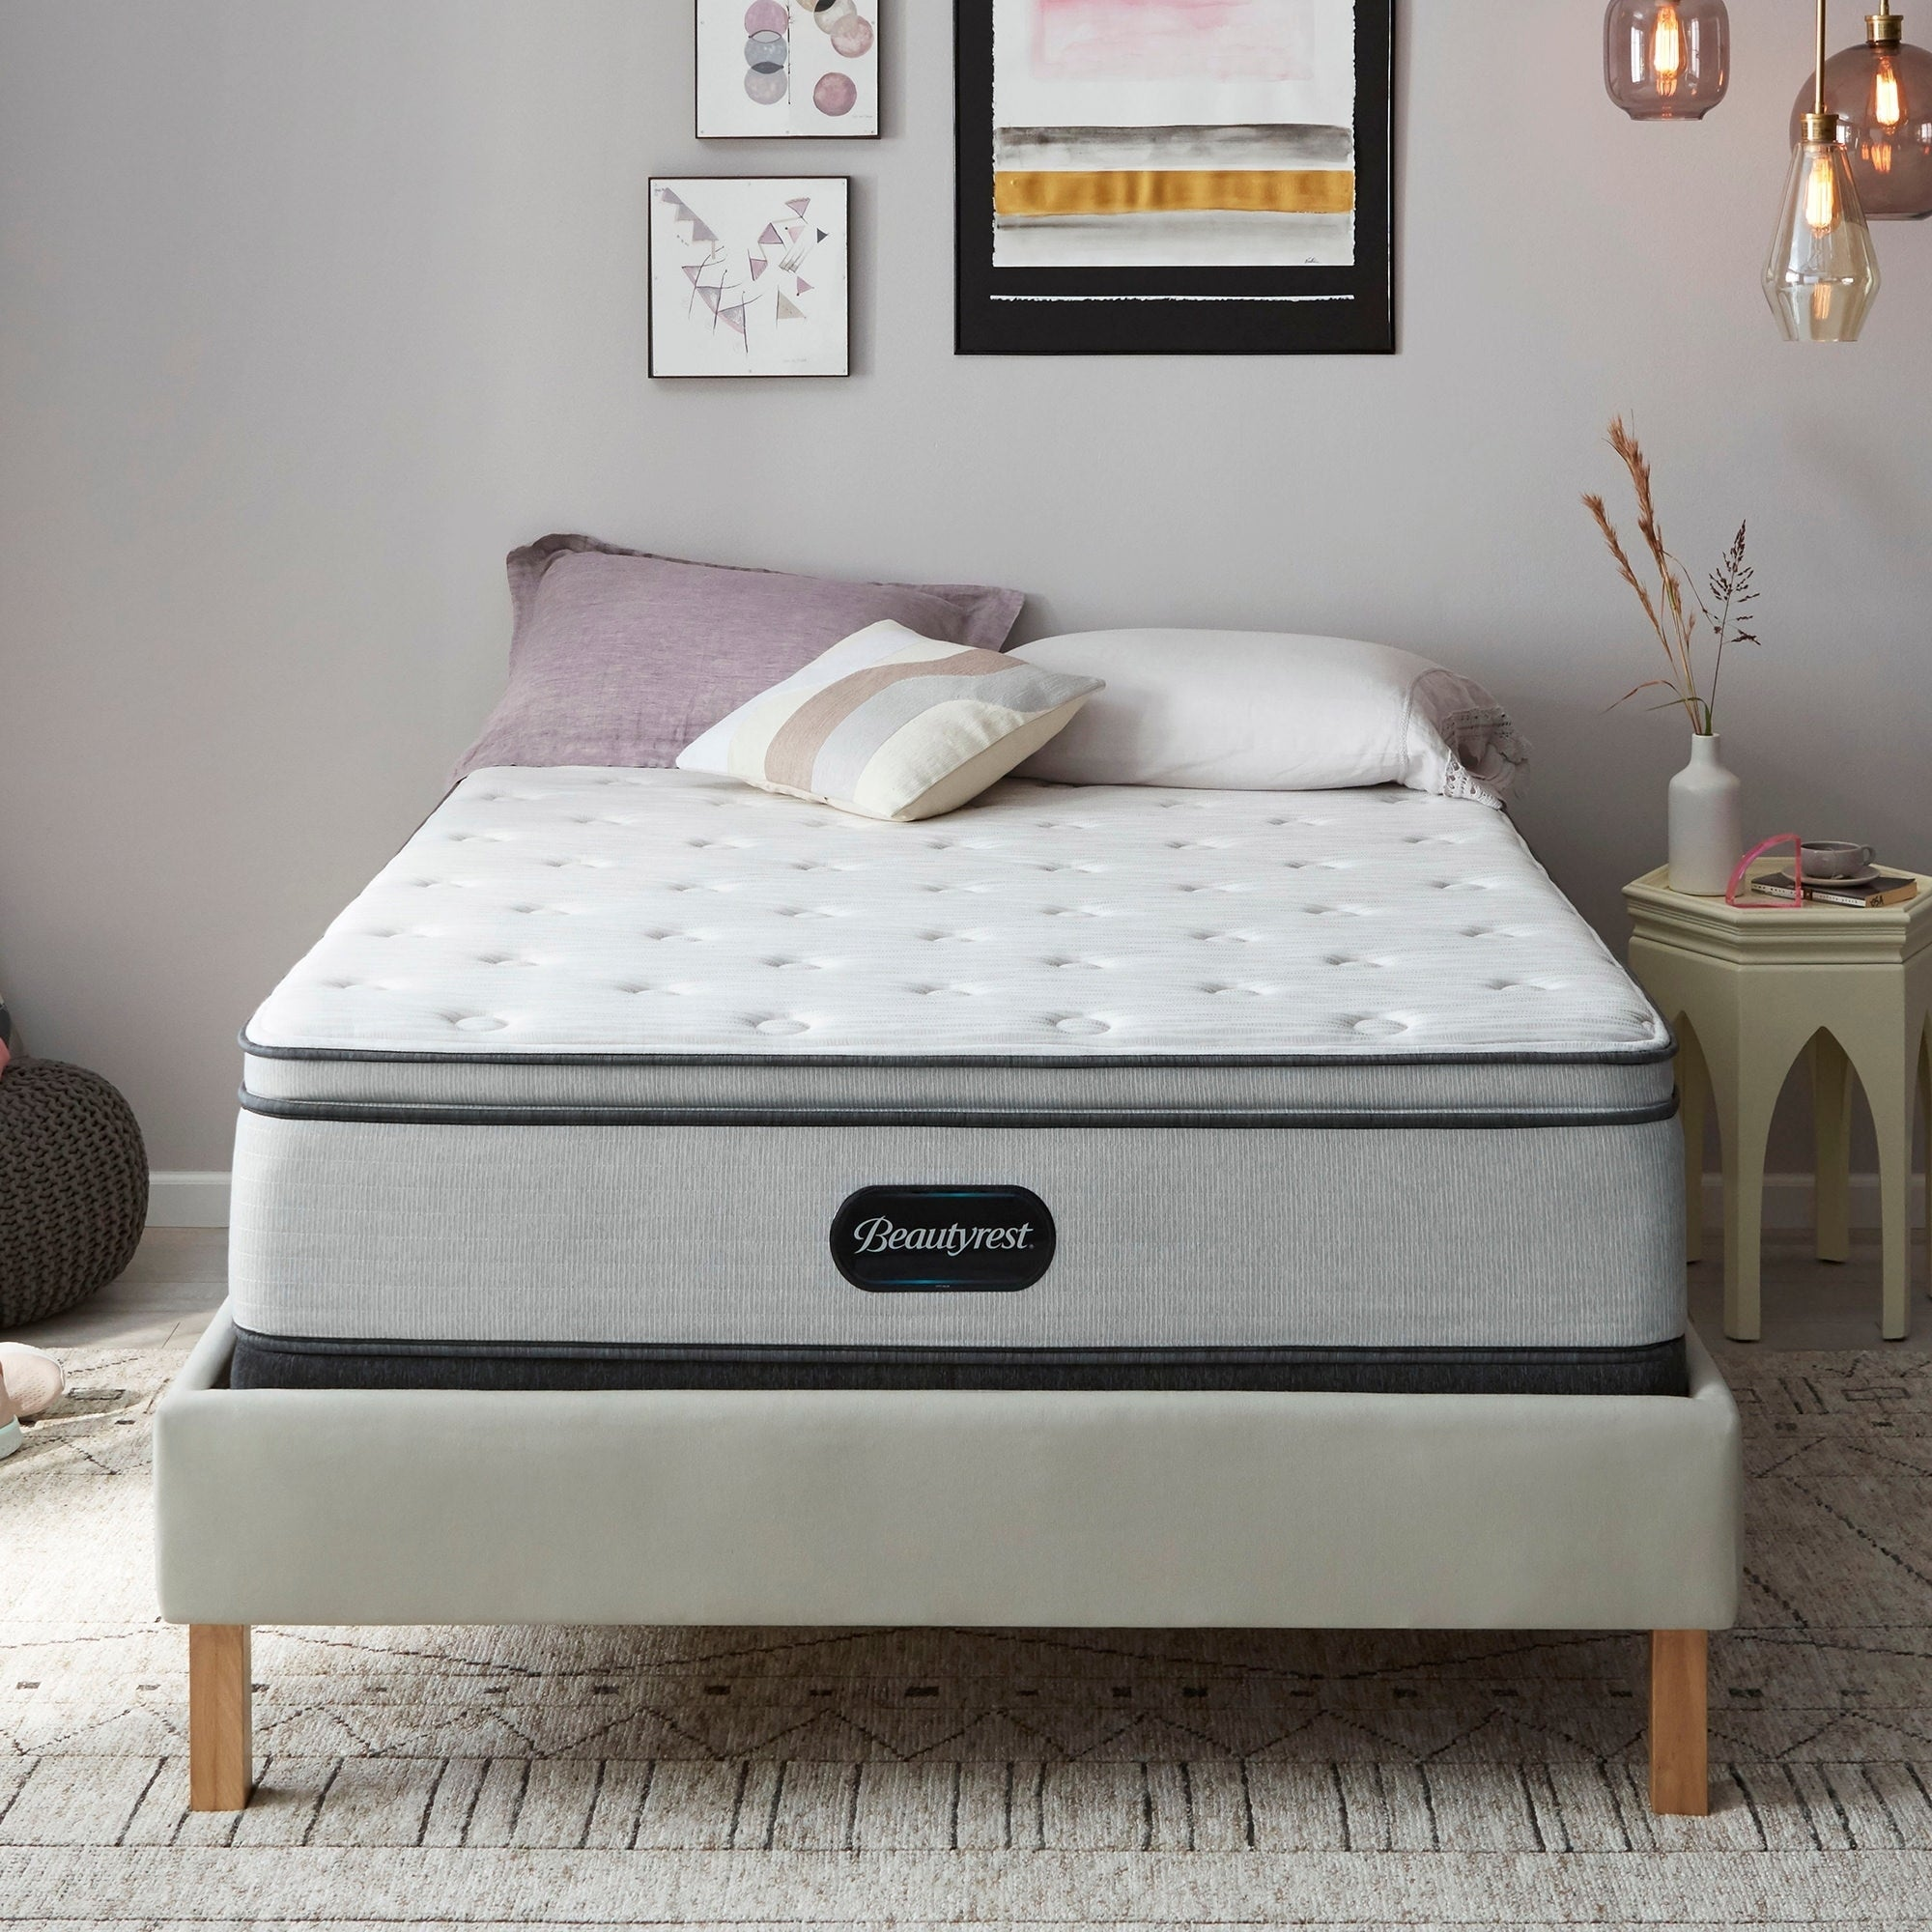 Beautyrest  BR800 13-inch Plush Pillow Top Mattress (Queen)